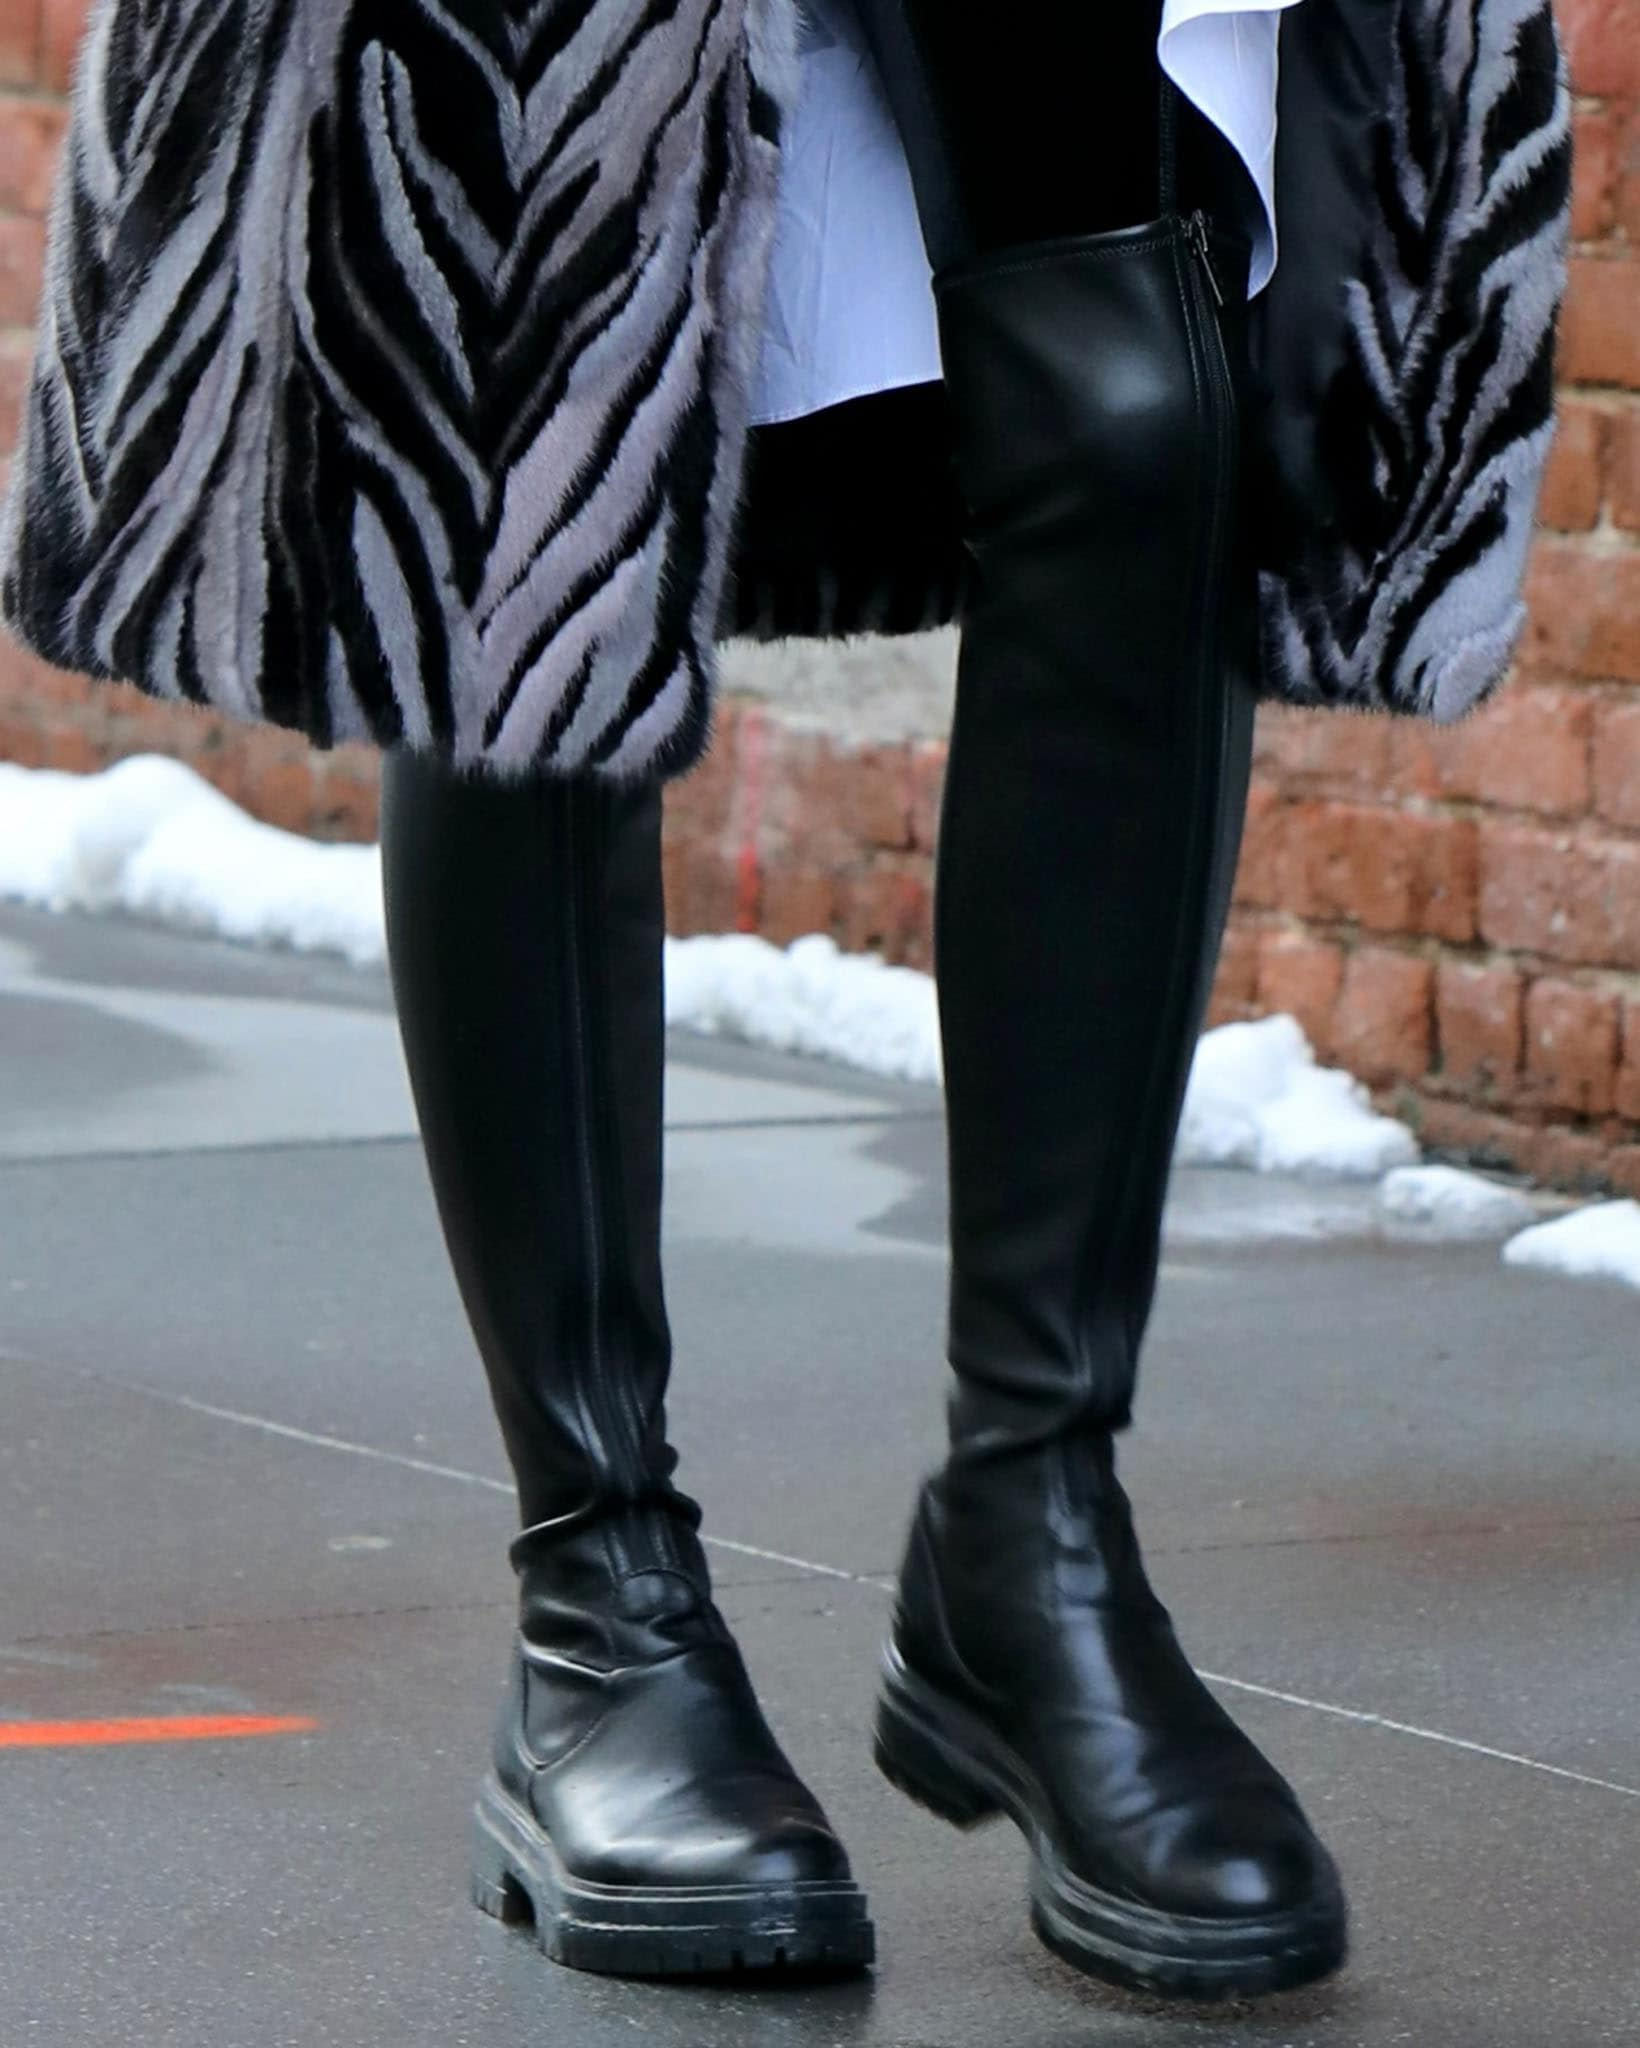 Olivia Palermo's Gianvito Rossi Marsden boots feature a zip fastening along the center front